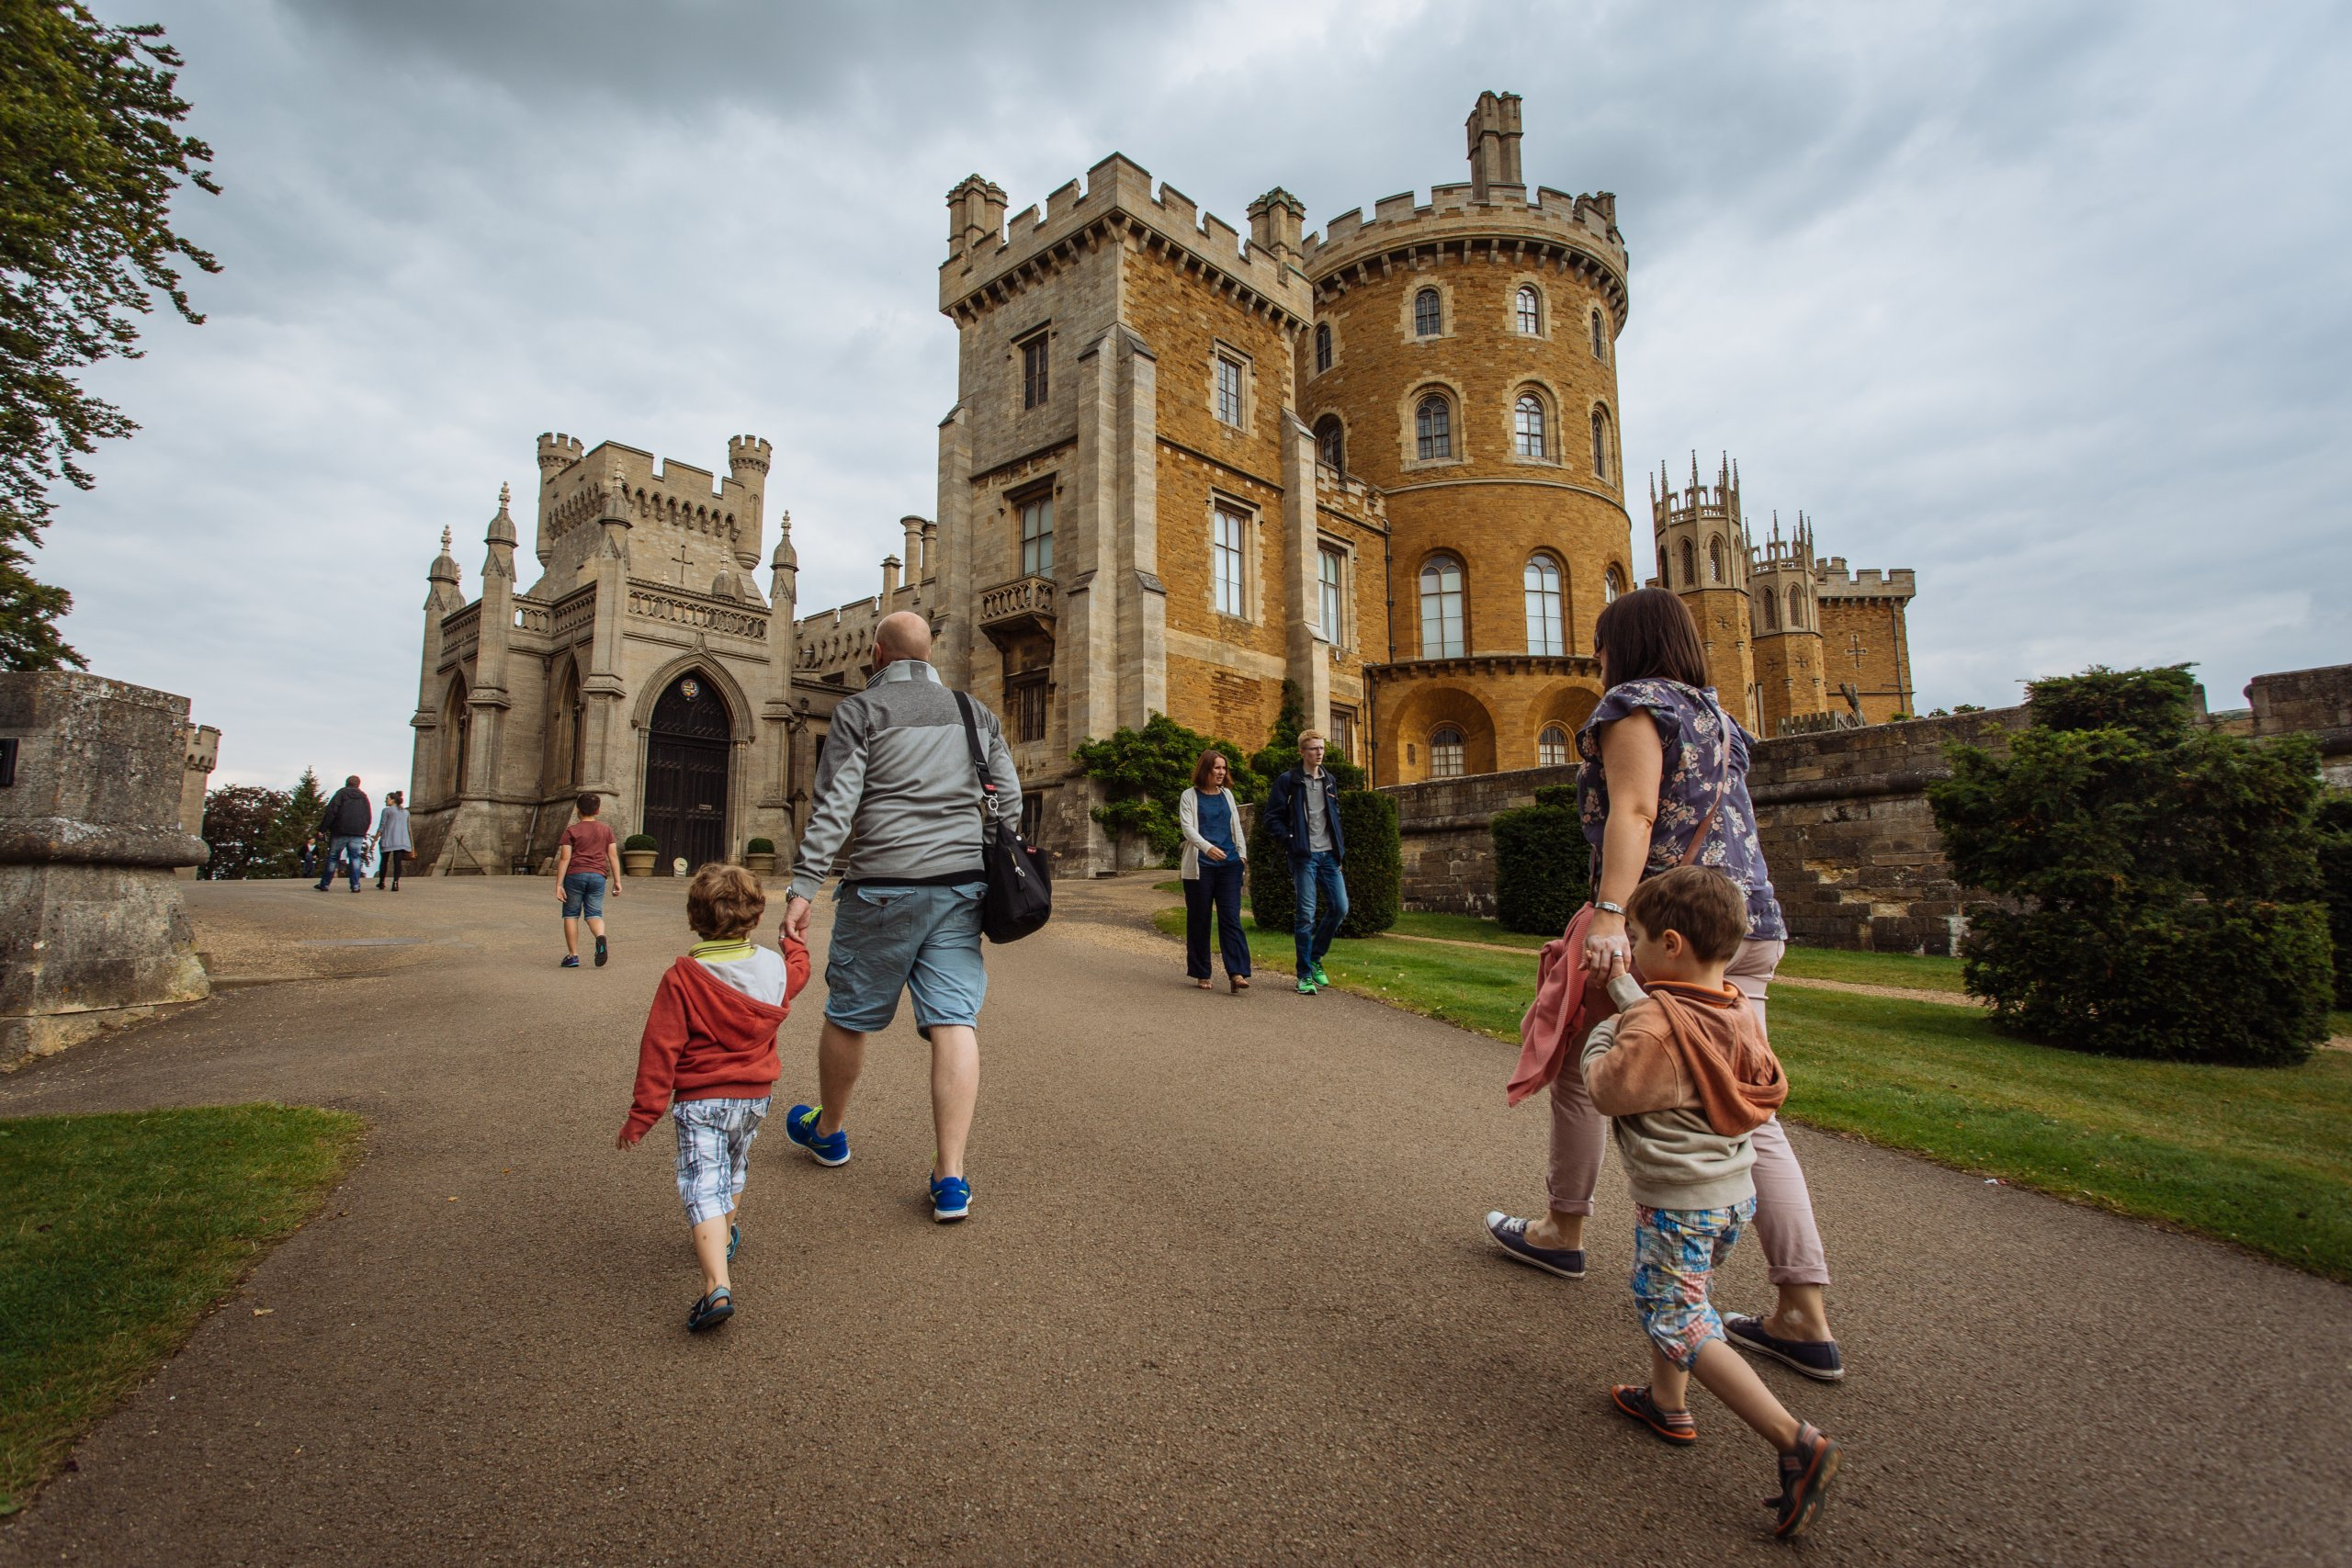 Visitors walk up to the hill Belvoir Castle